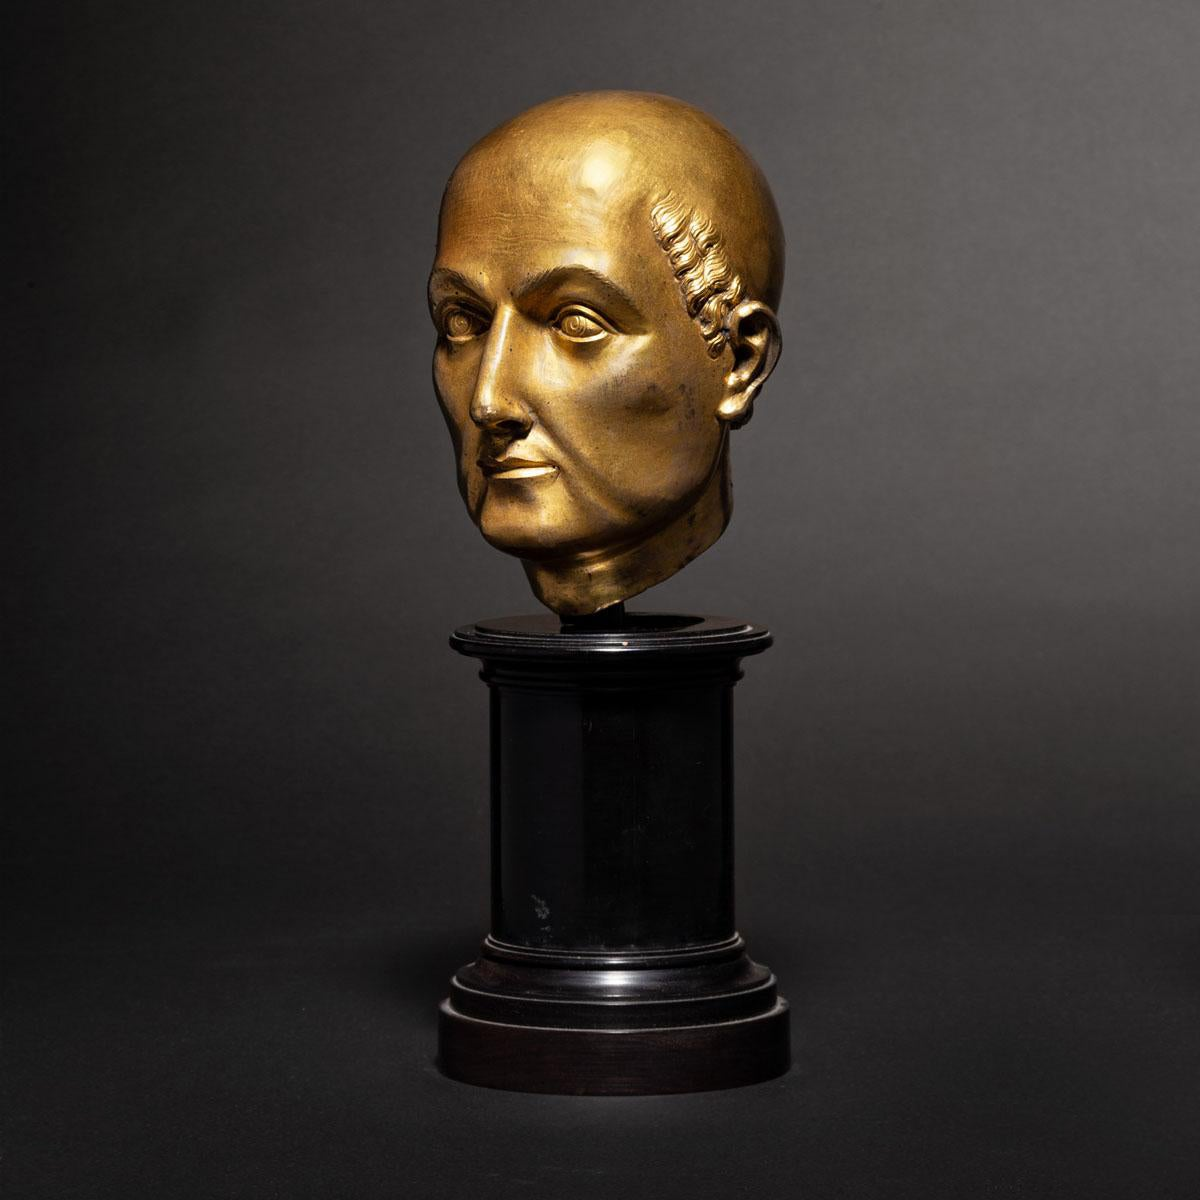 Image of 16th century Florentine gilt bronze Bust of a Saint, possibly by Baccio Bandinelli or circle